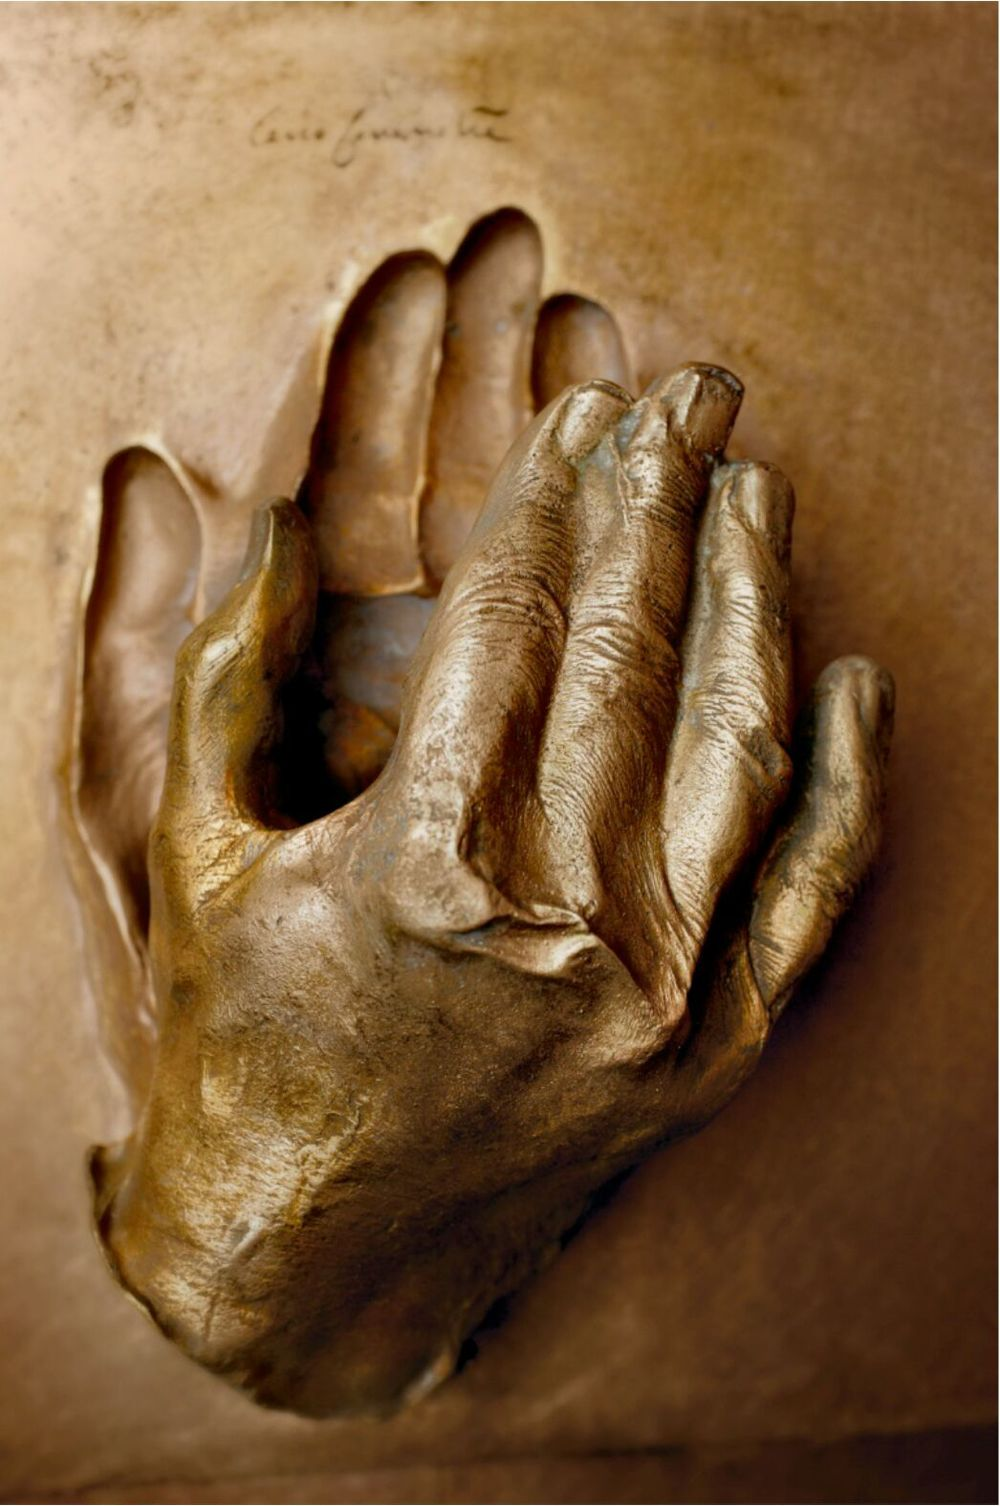 Cast of the Hand of Blessed John Paul II, Pope (Photo copyright 2015 © Città del Vaticano)